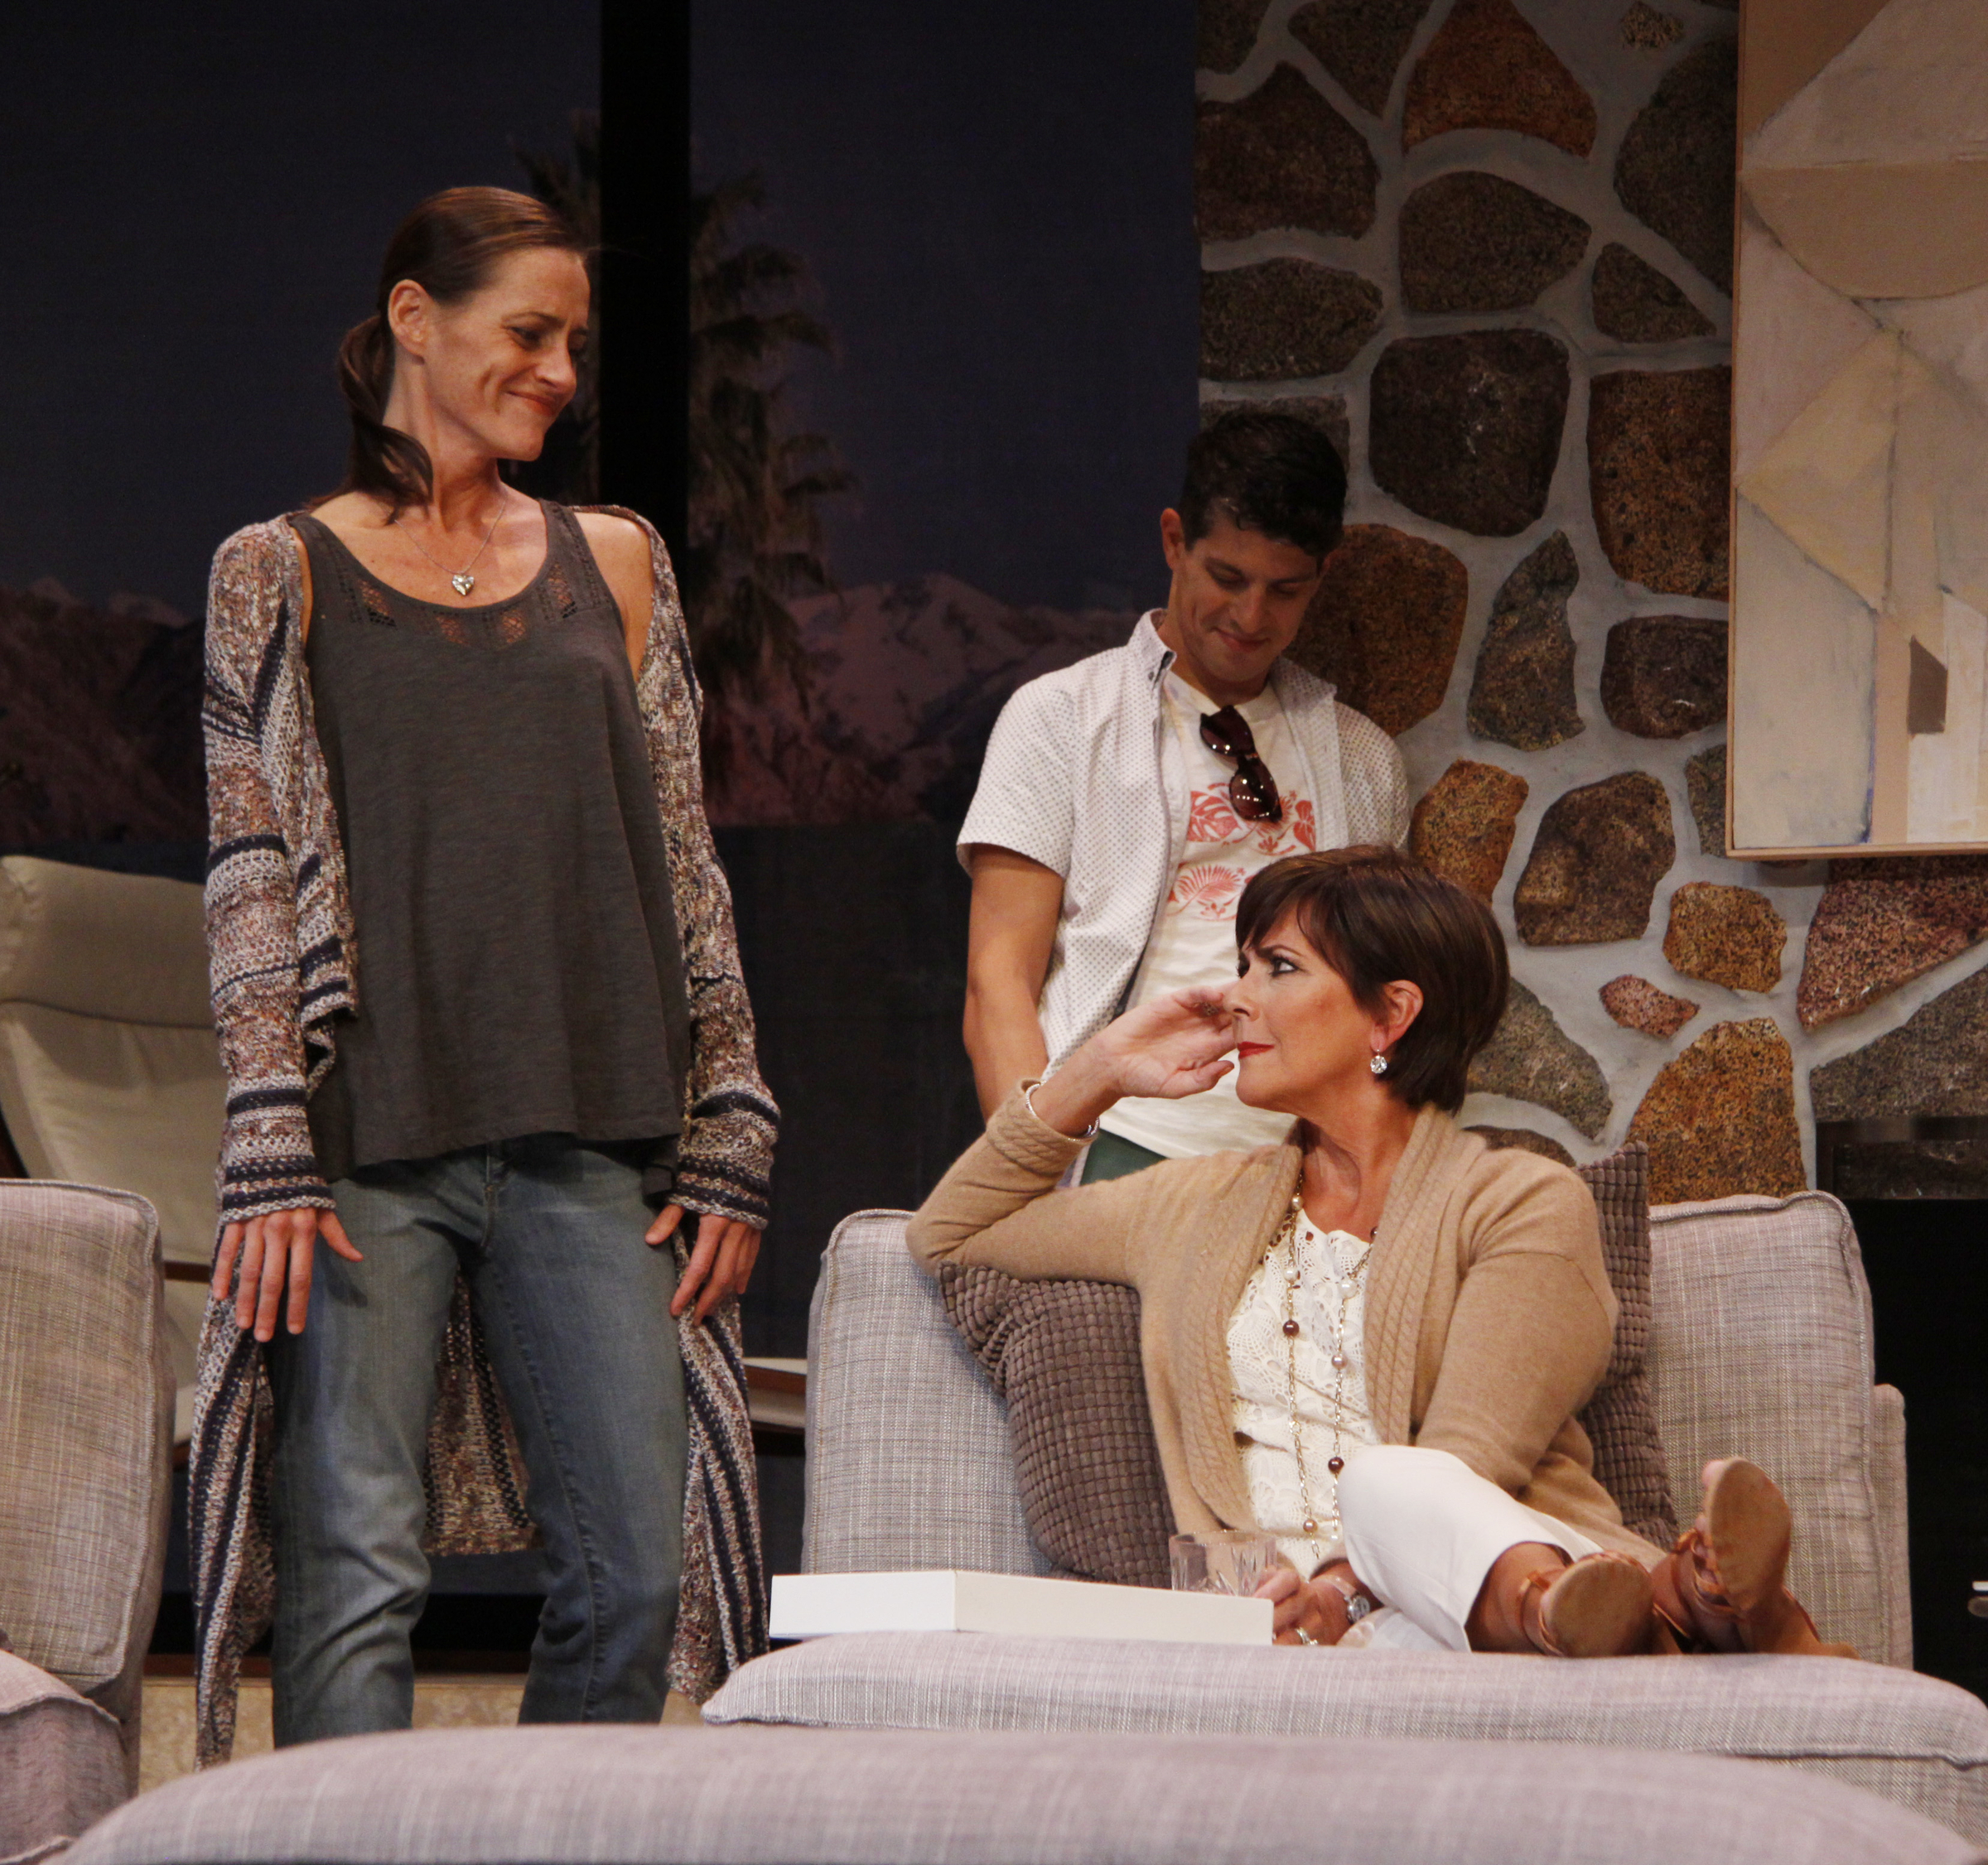 left BRENDA WITHERS as Brooke, center DAVEY RAPHAELY as Trip, front right COLLEEN ZENK as Polly /photo credit: SUE COFLIN/MAX PHOTOS